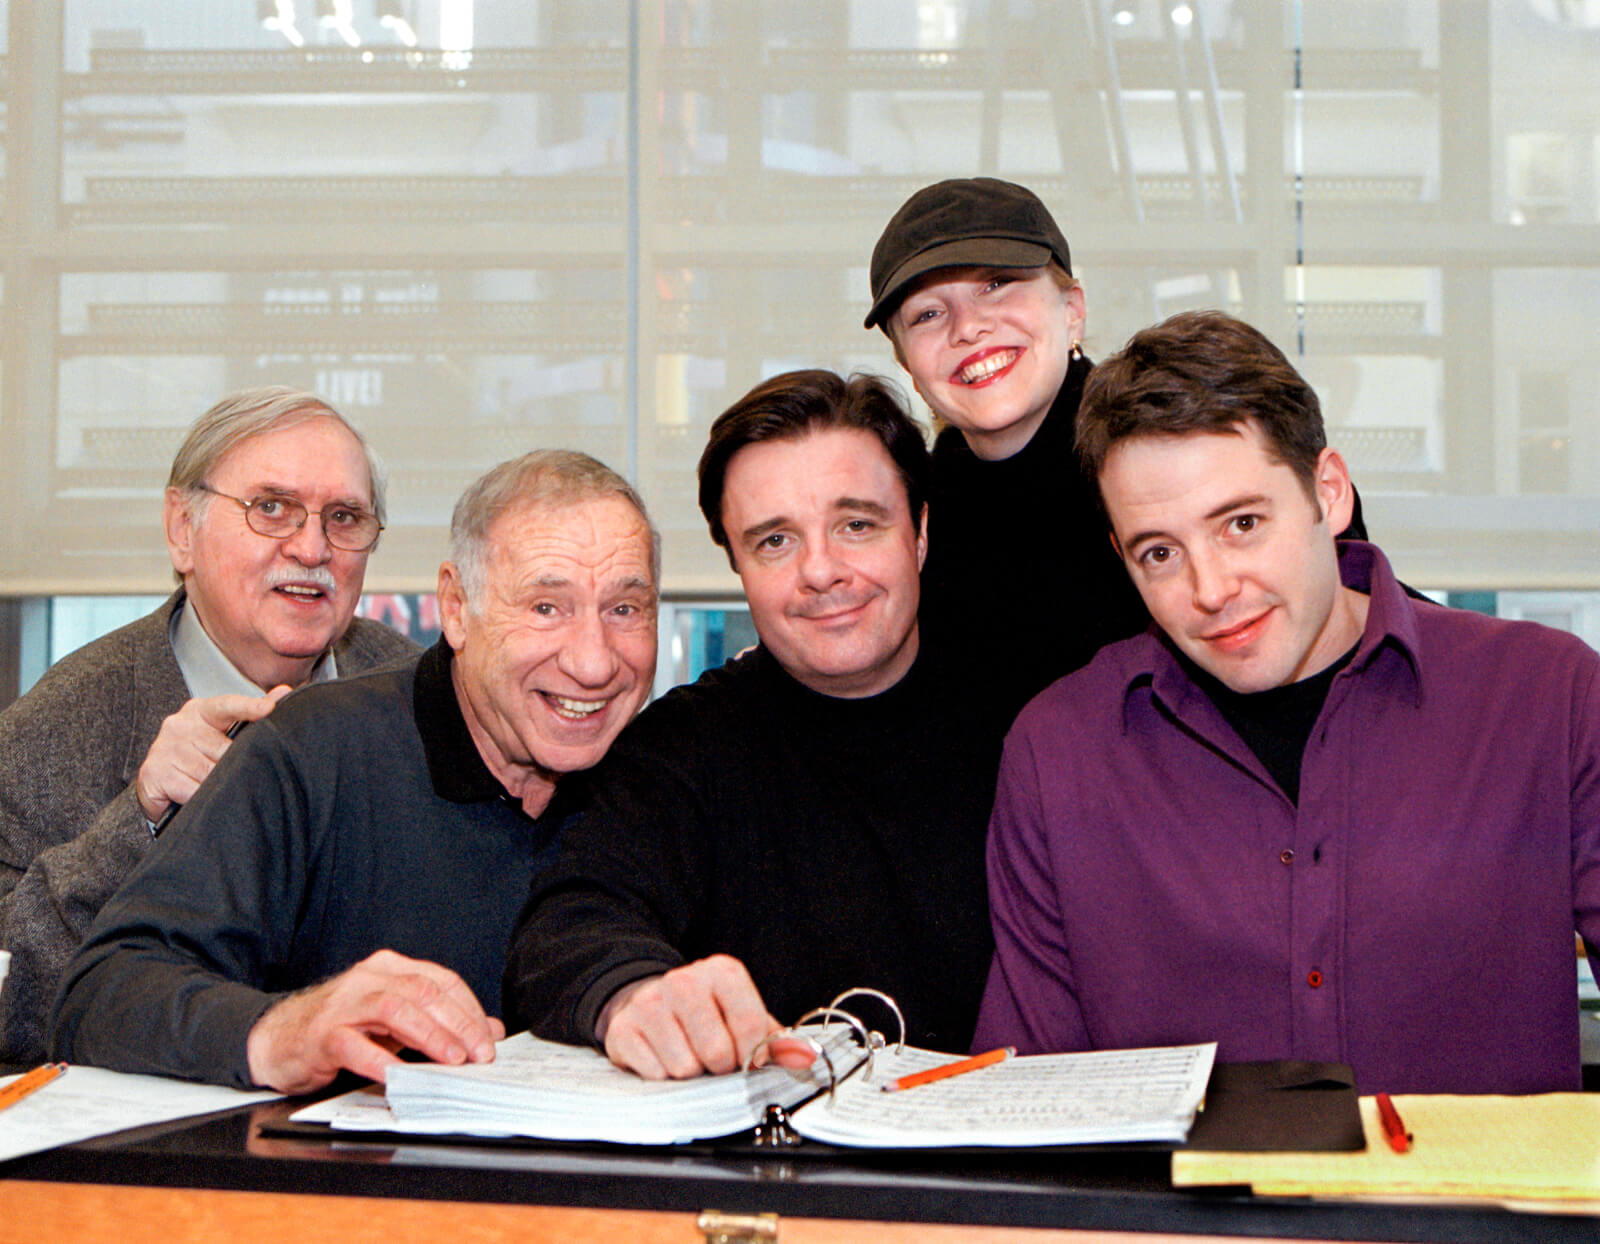 Tom Meehan, Mel Brooks, Nathan Lane, Susan Stroman, and Matthew Broderick in rehearsal for The Producers; huddled around a piano.